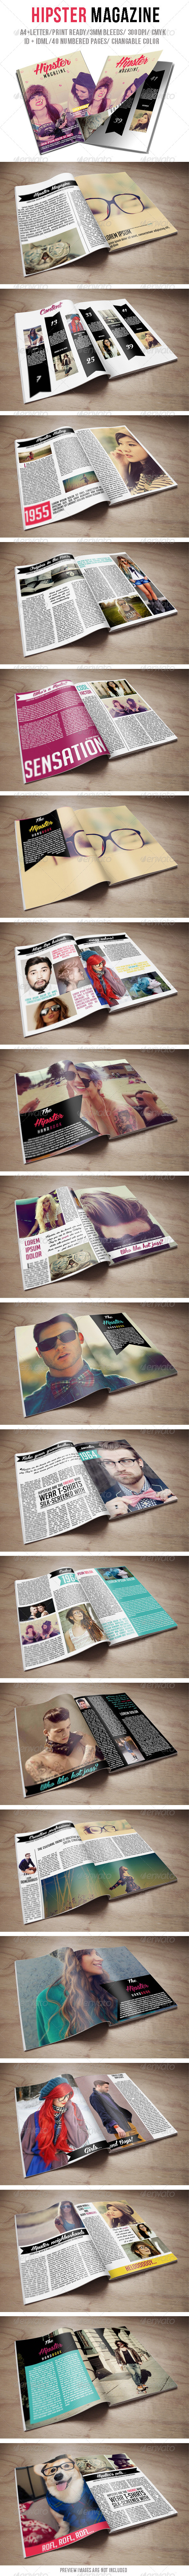 GraphicRiver Hipster Magazine 6270254